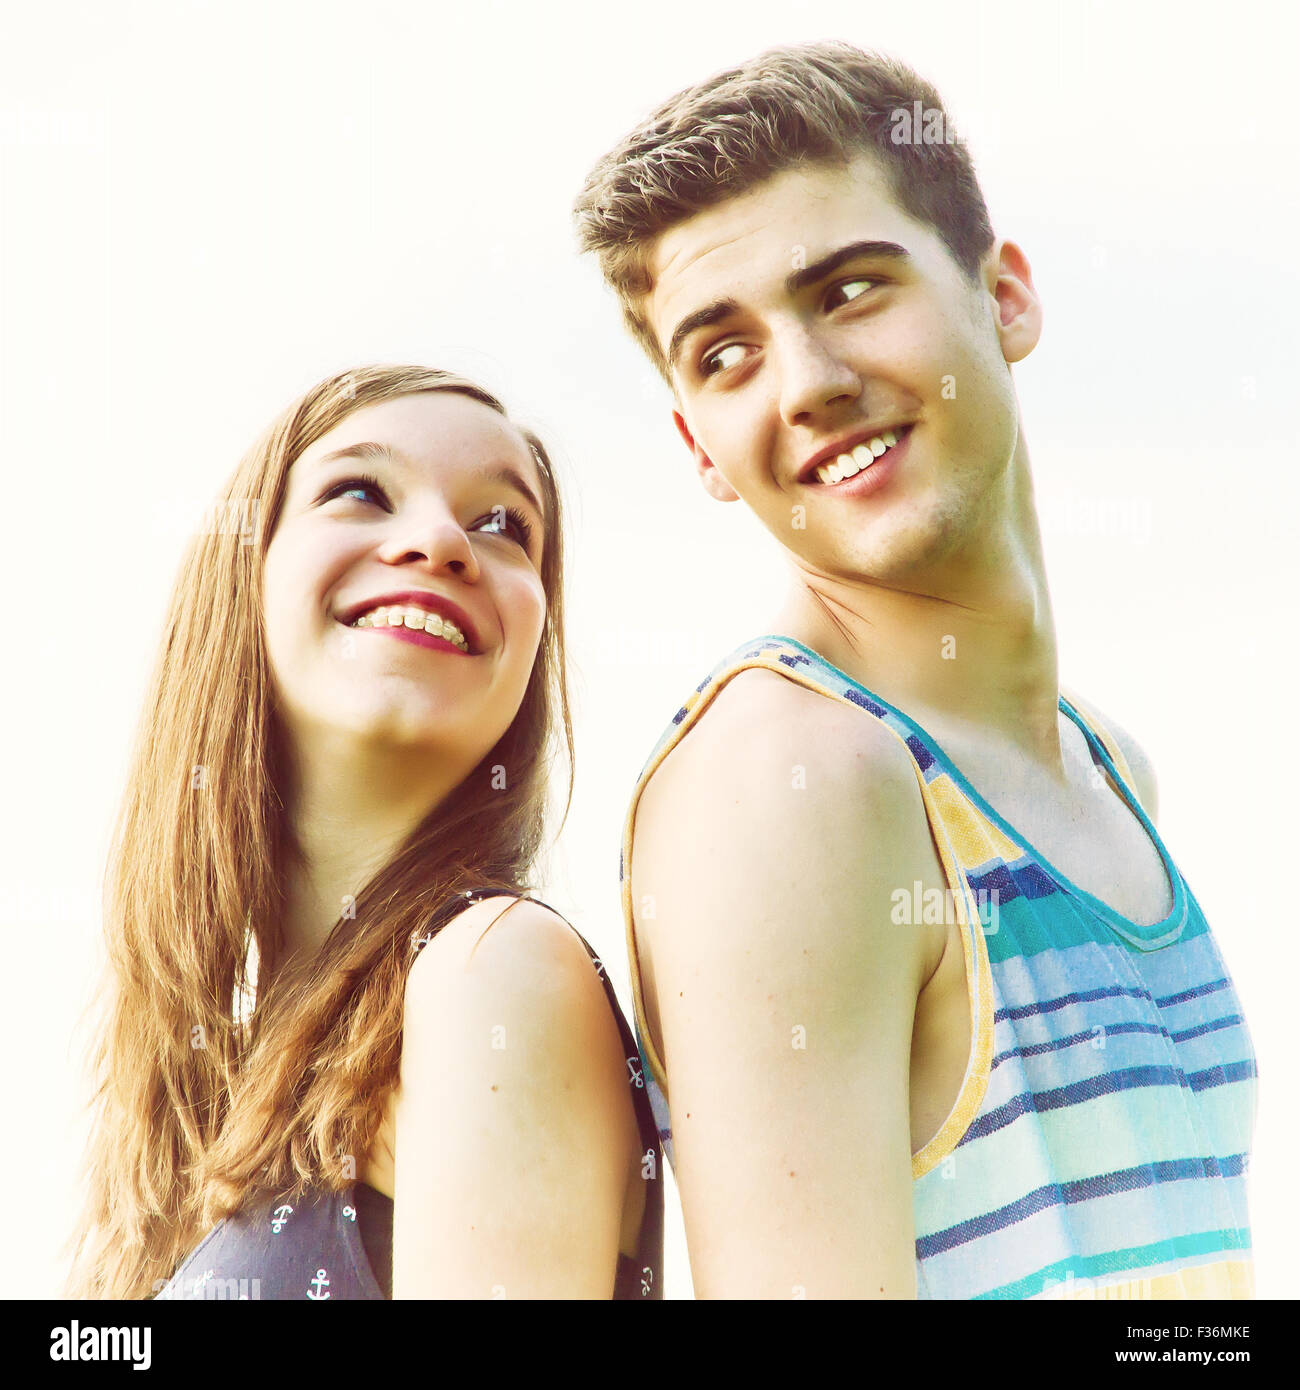 Young, happy couple - Stock Image